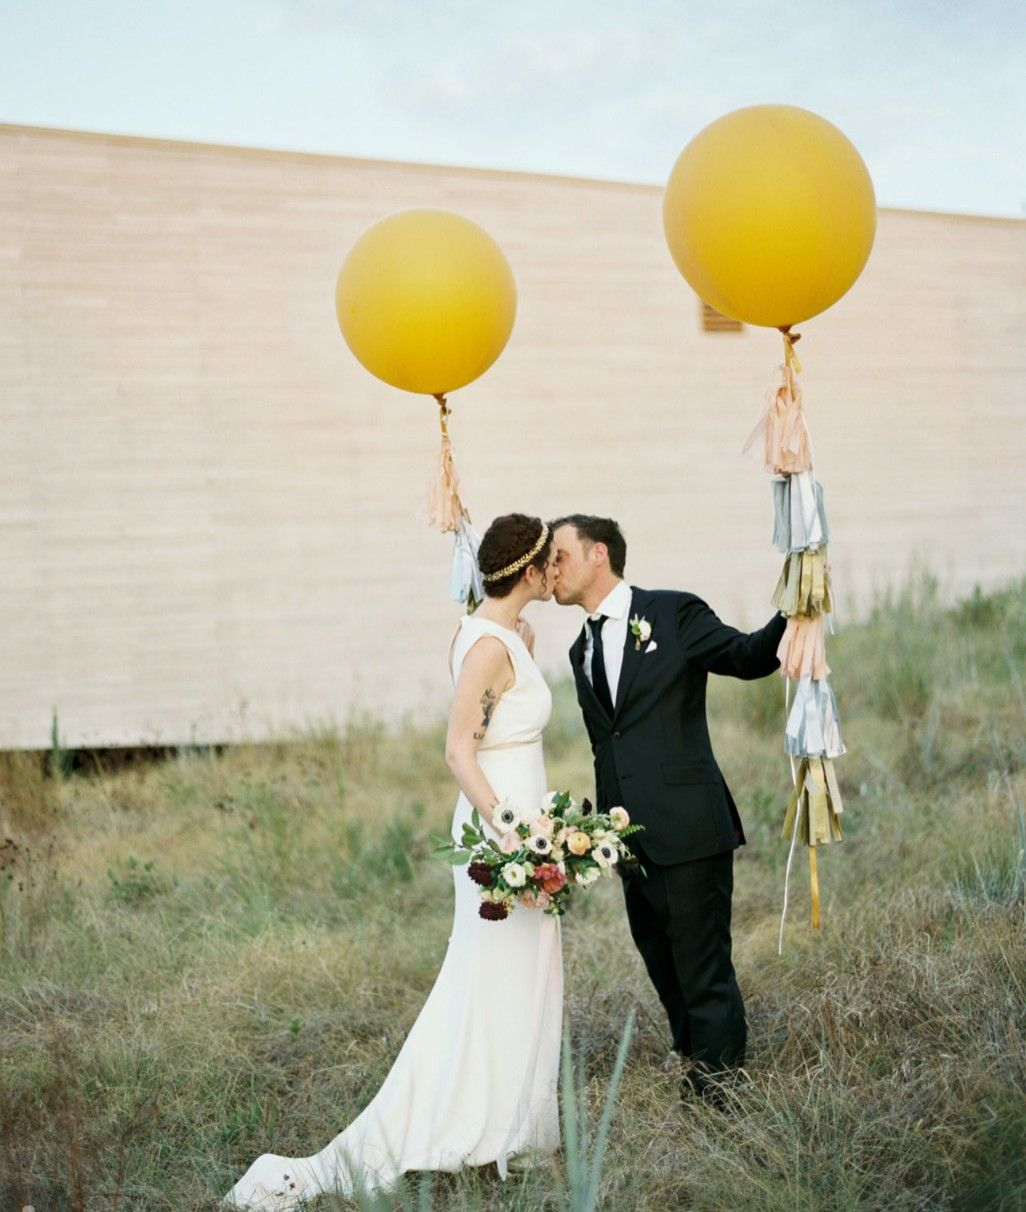 Mustard balloons small intimate vows pinterest